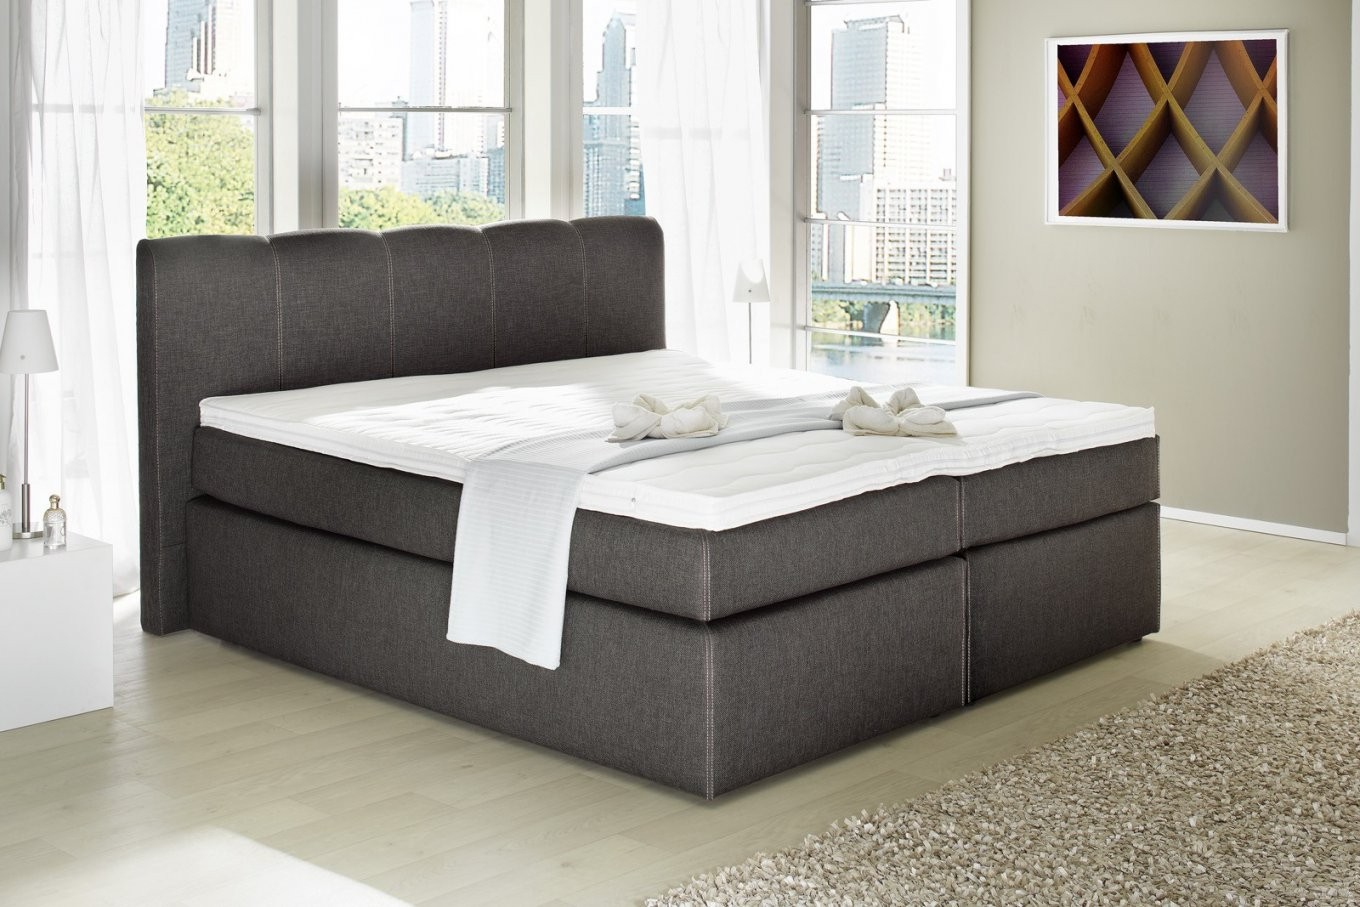 Harde Topper Boxspring Best Of Boxspring Bett Inkl Topper 180×200 von Bett Topper 180X200 Photo